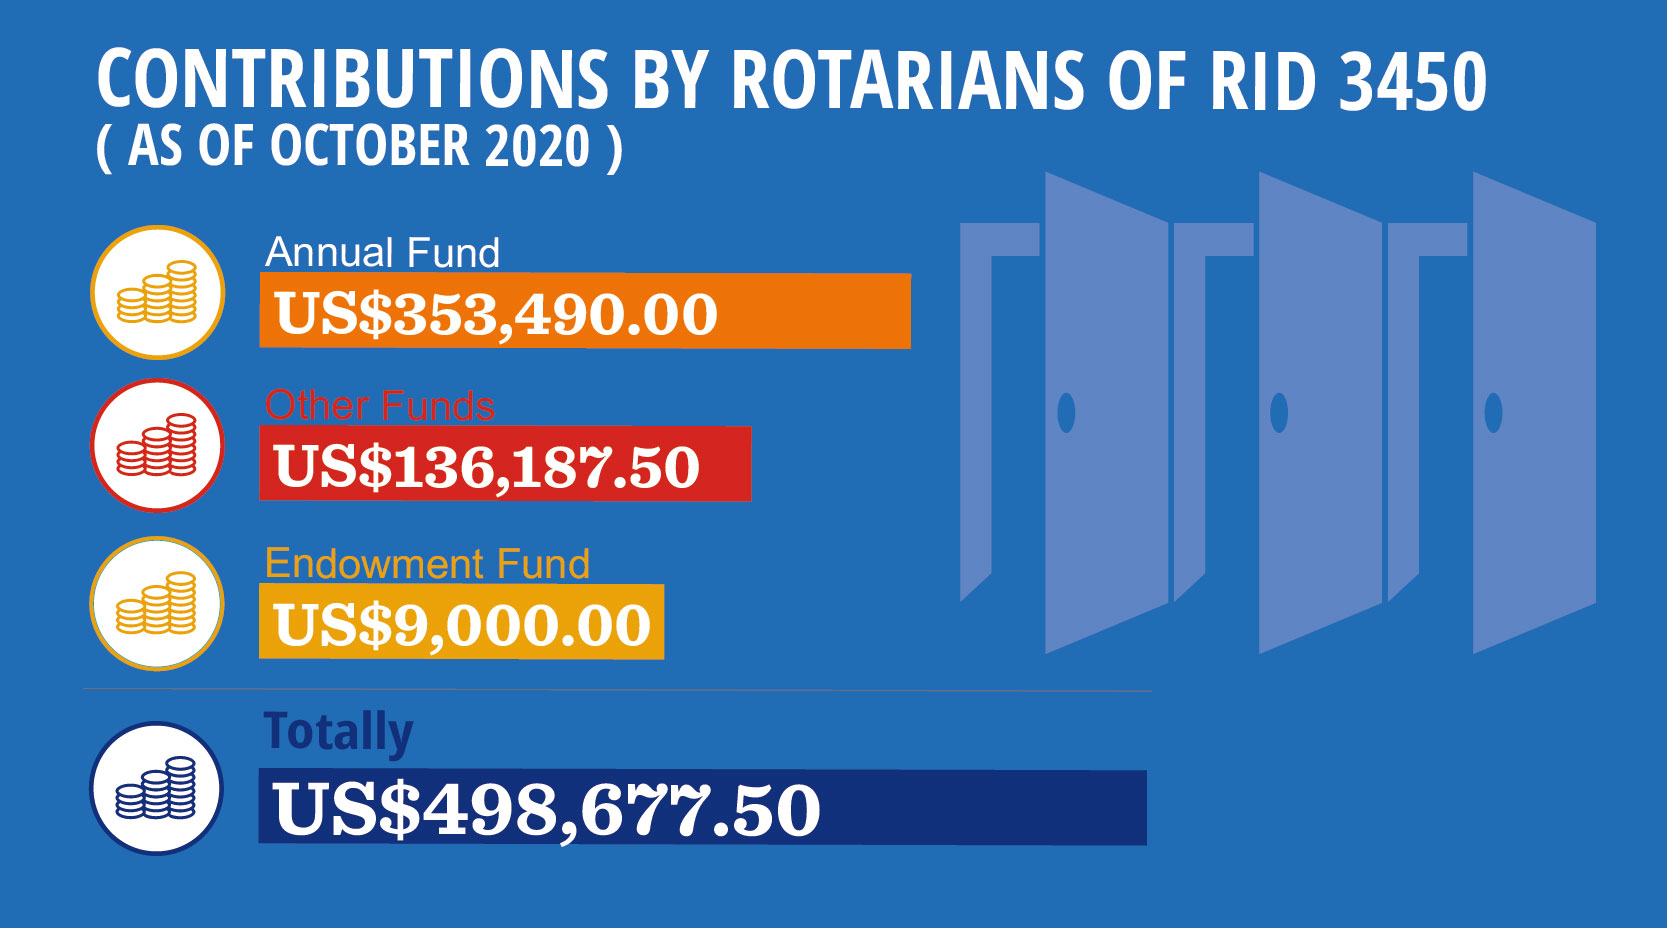 November is Rotary Foundation Month, by PDG Jones Wong